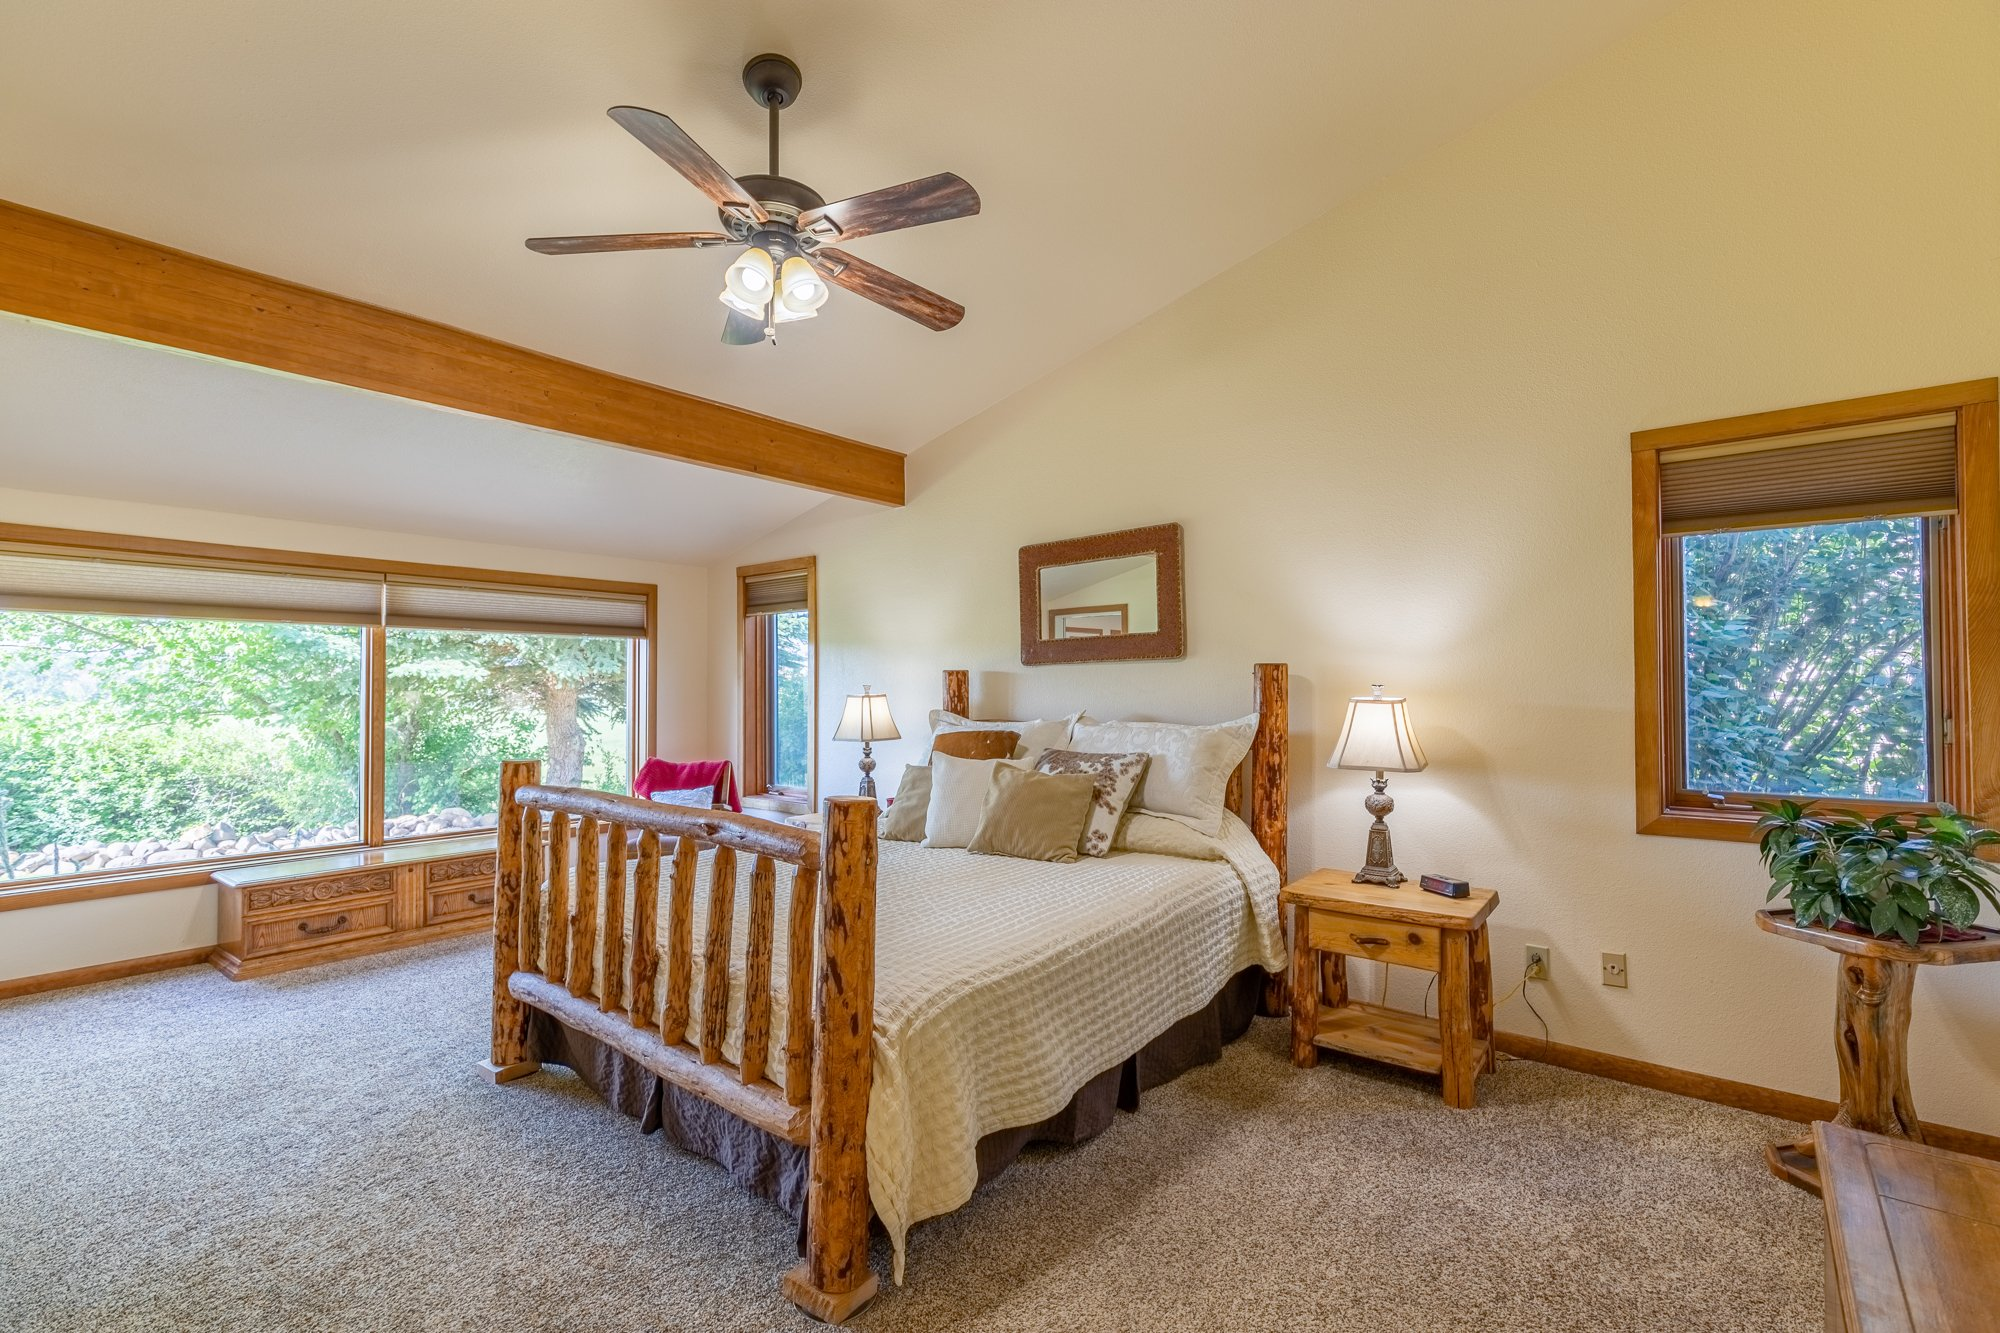 Master Bedroom with Carpet - 17777 6650 Rd Montrose, CO 81403 - Atha Team Country Real Estate